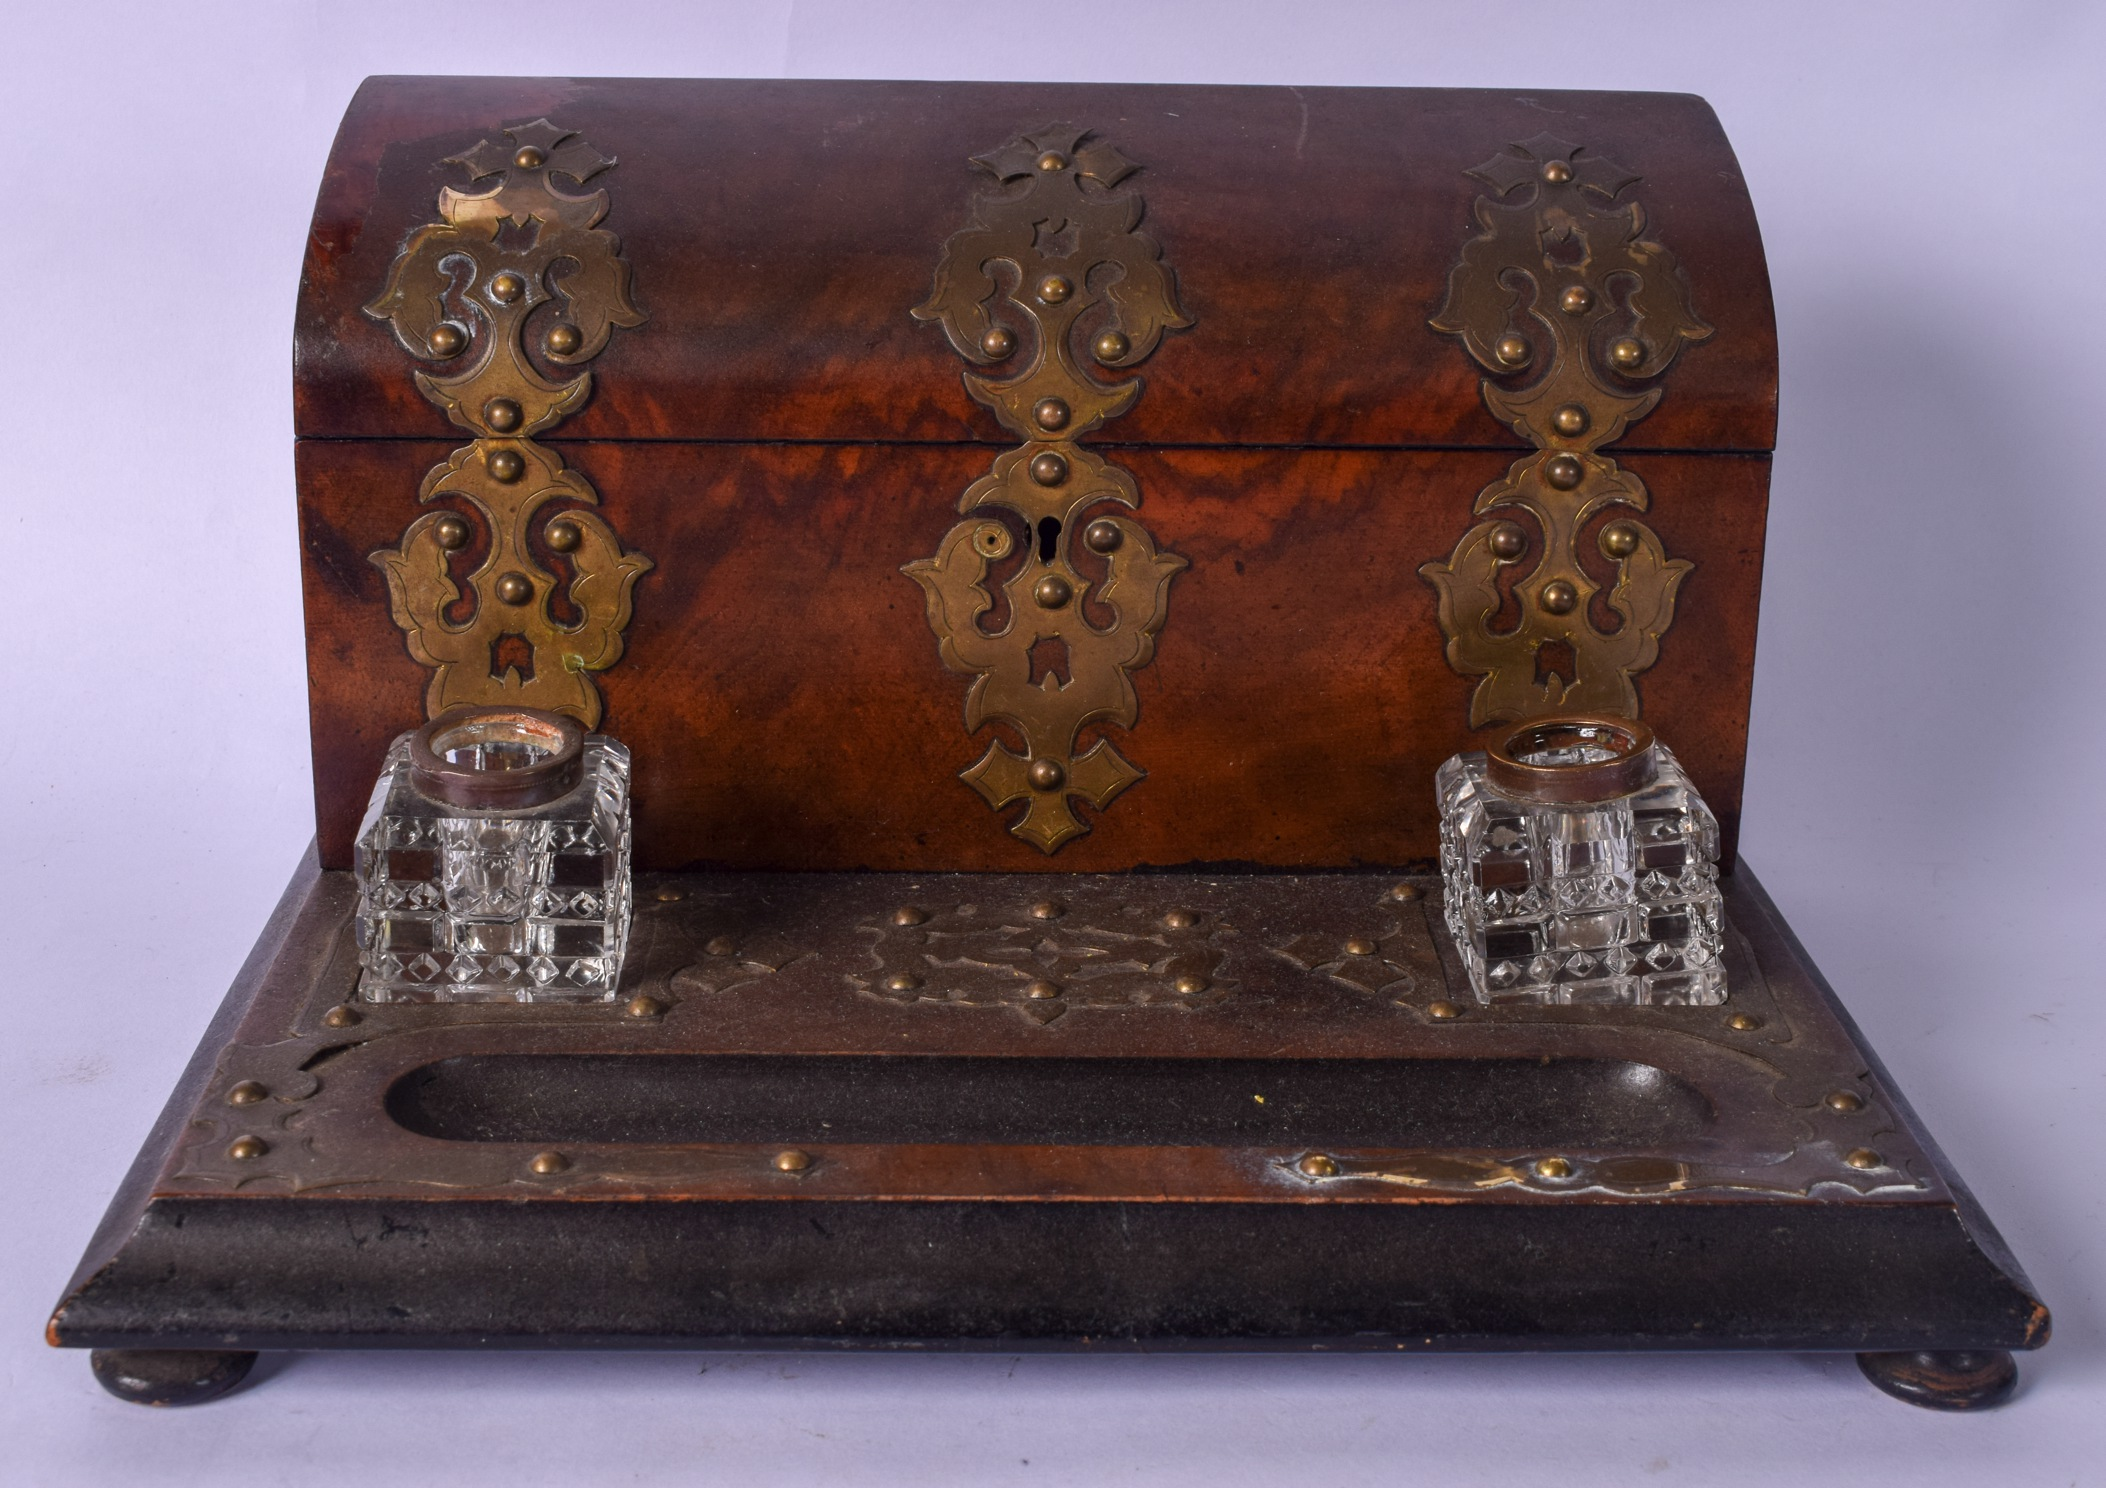 Lot 2530 - A VICTORIAN WALNUT STATIONARY CASKET WITH INKWELL BY CORMACK BROTHER'S, 37 LUDGATE HILL LONDON,